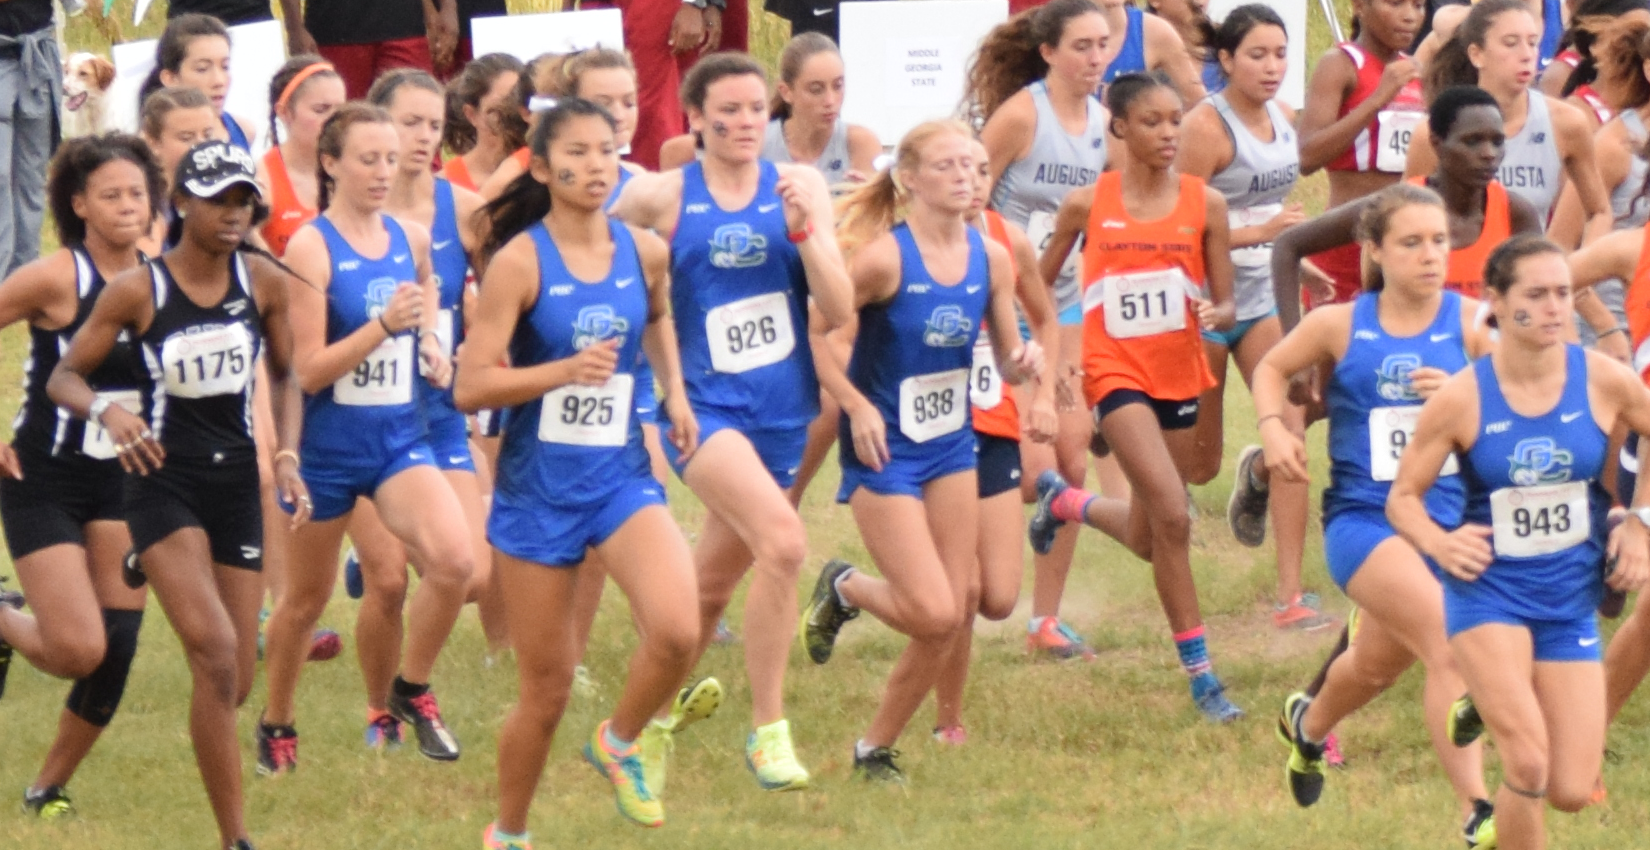 Bobcat Women's Cross Country